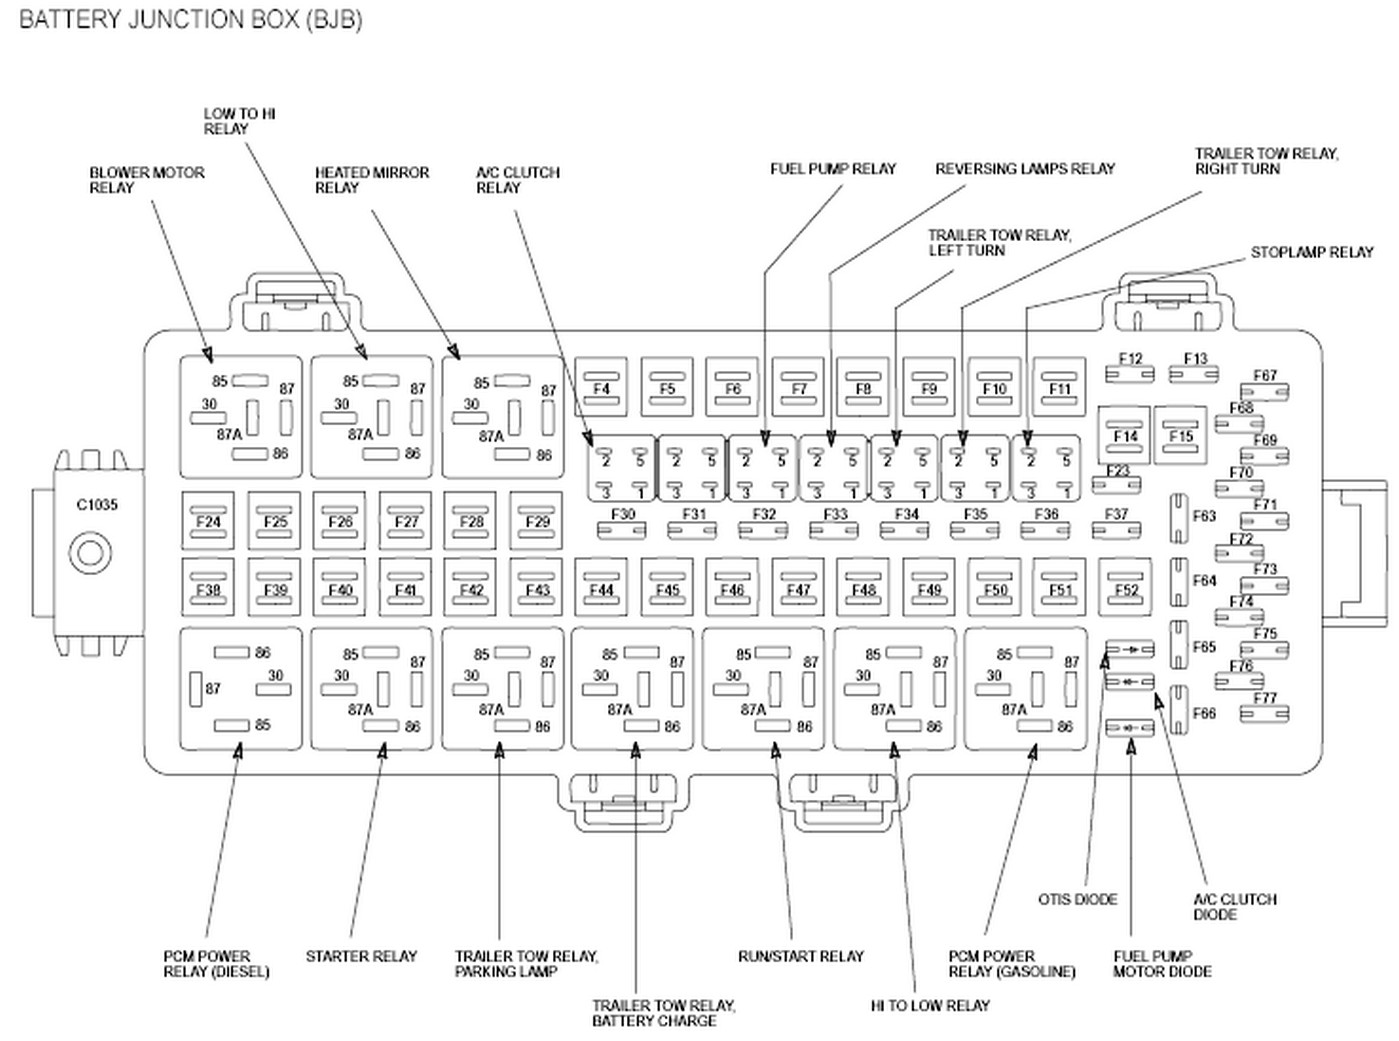 2011 ford f250 fuse box diagram Zoinyhu 2012 f250 fuse box location 2009 ford fusion fuse box diagram 1997 f350 fuse box diagram under the hood at edmiracle.co